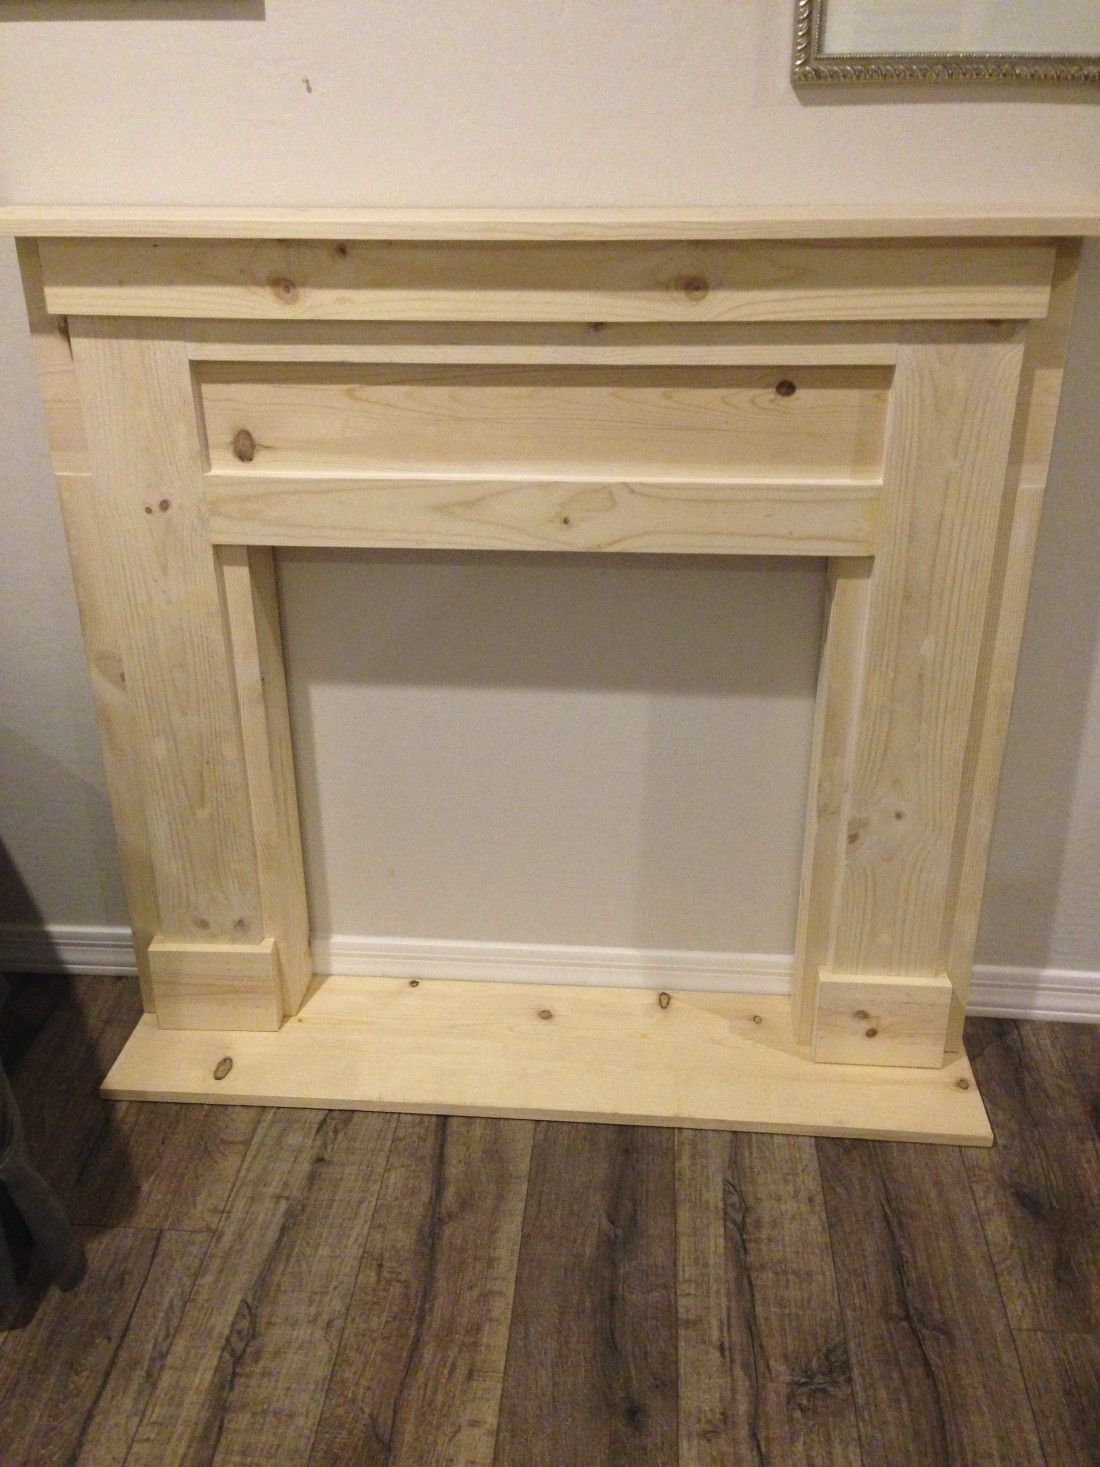 diy pallet fireplace surround Google Search Projects